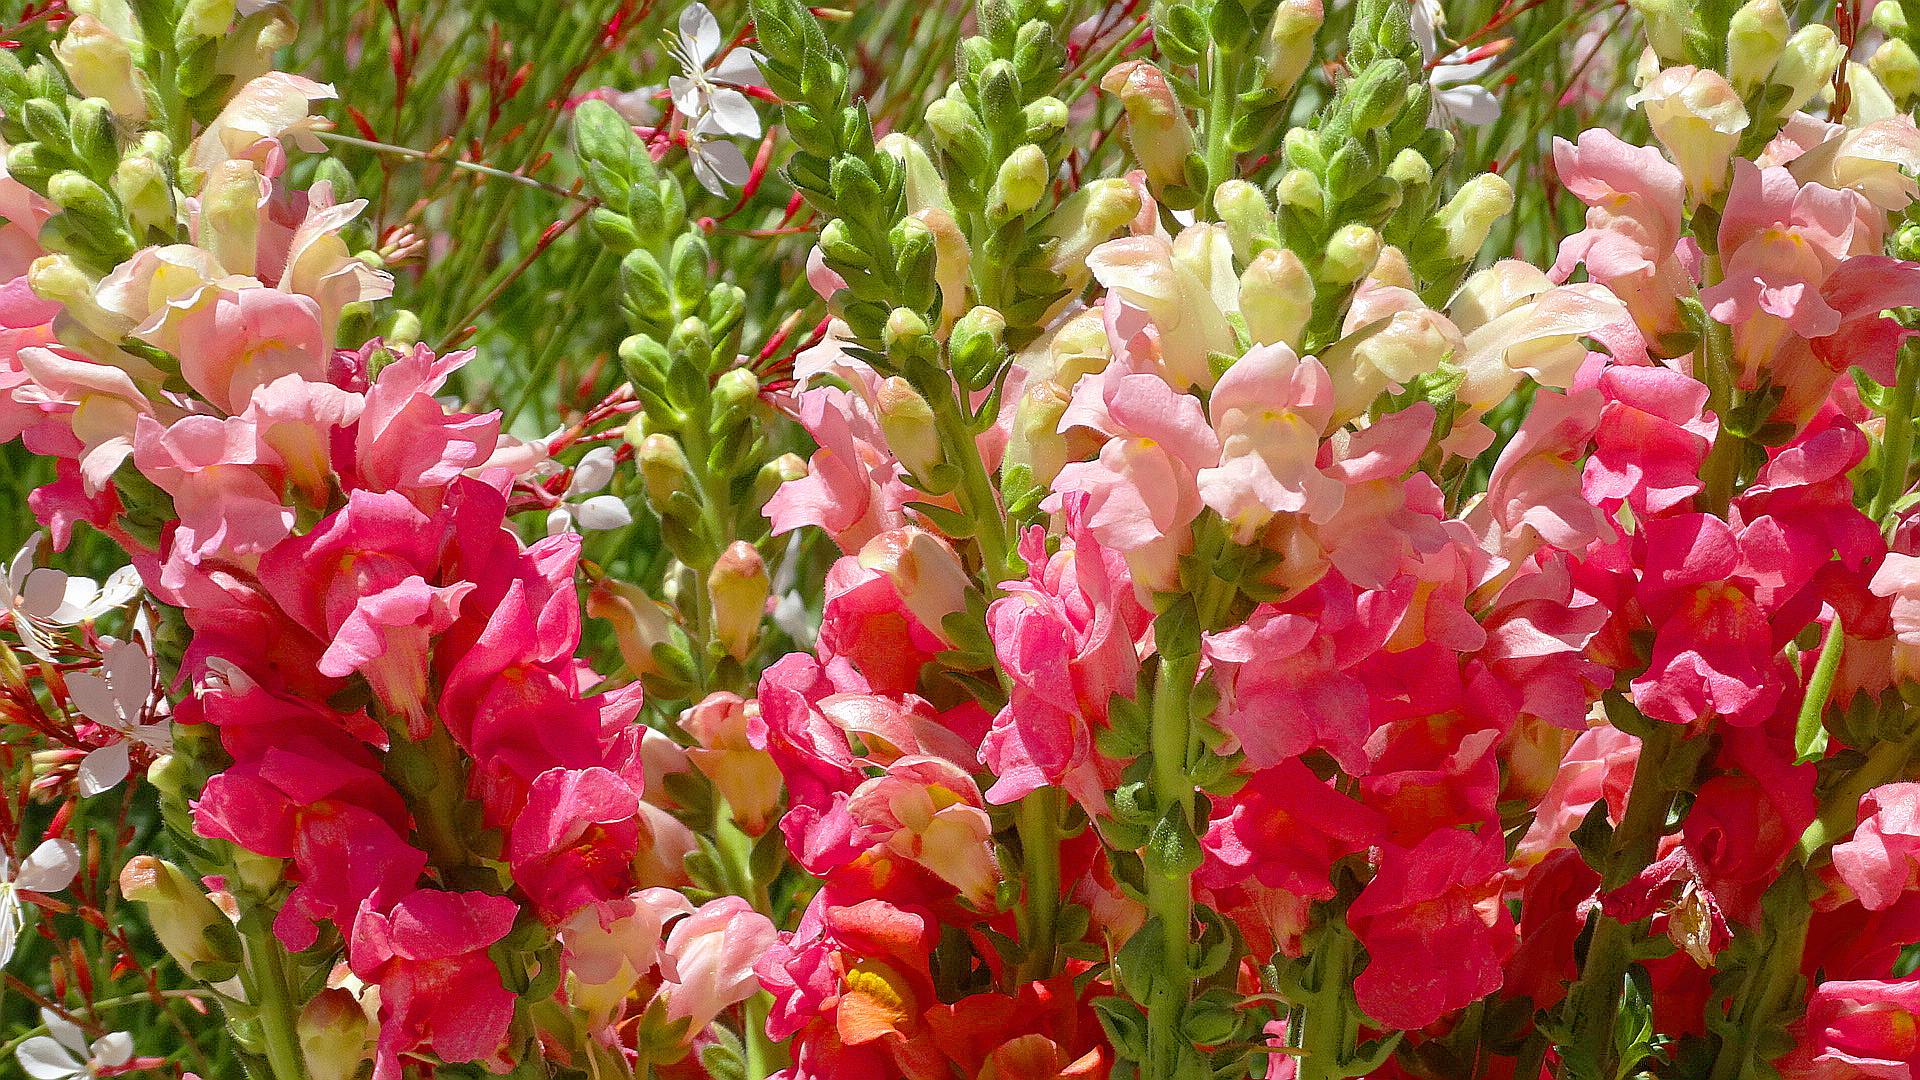 Snapdragon Photos